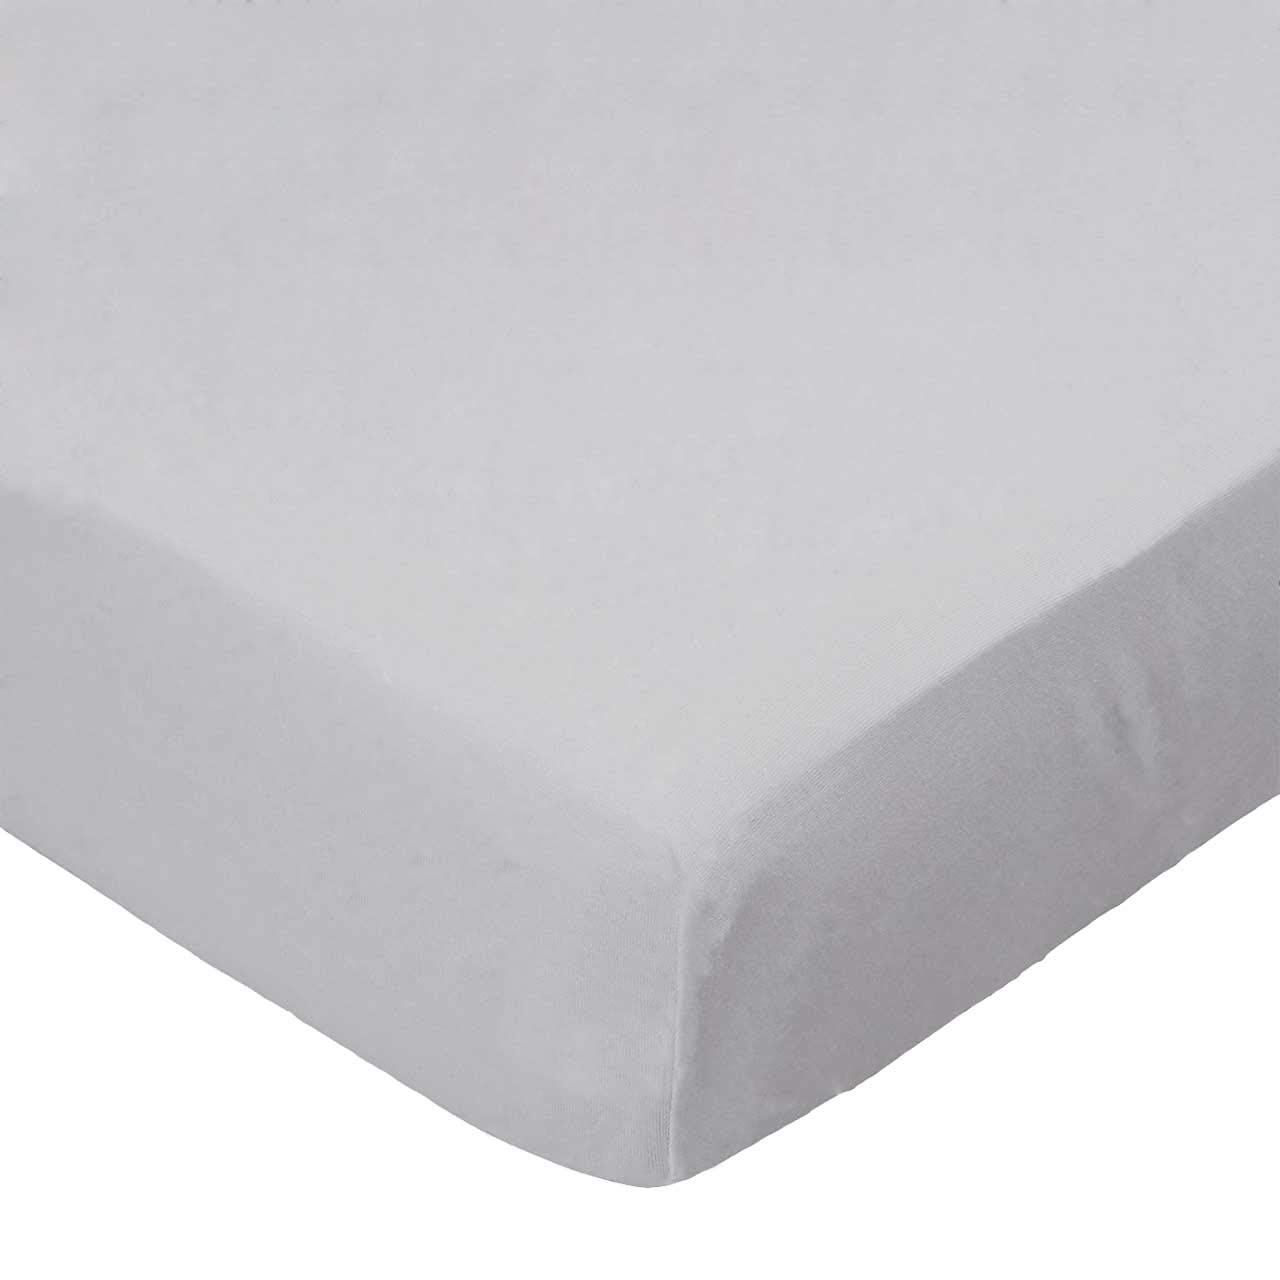 SheetWorld Fitted Pack N Play (Graco) Sheet - Flannel - Silver Grey - Made In USA by sheetworld   B017J0BS7M